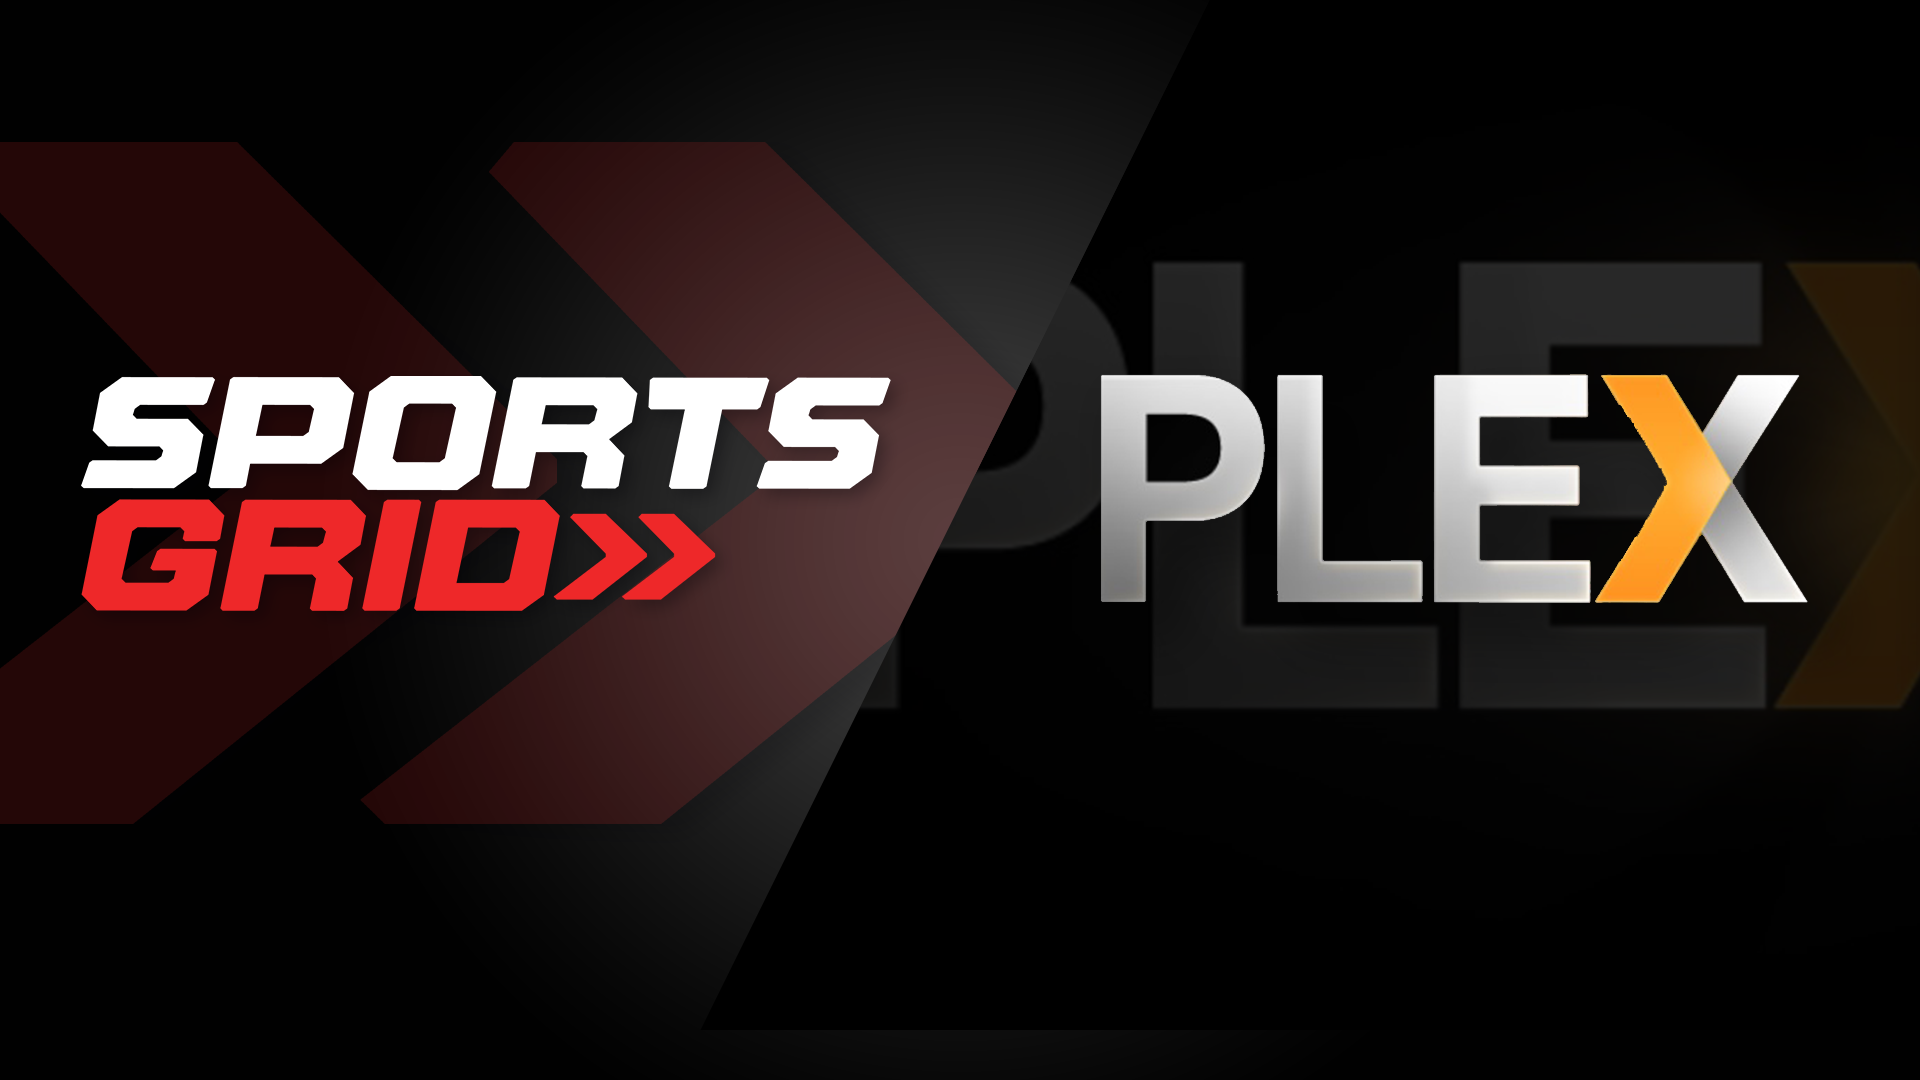 SportsGrid Network Launches on Plex